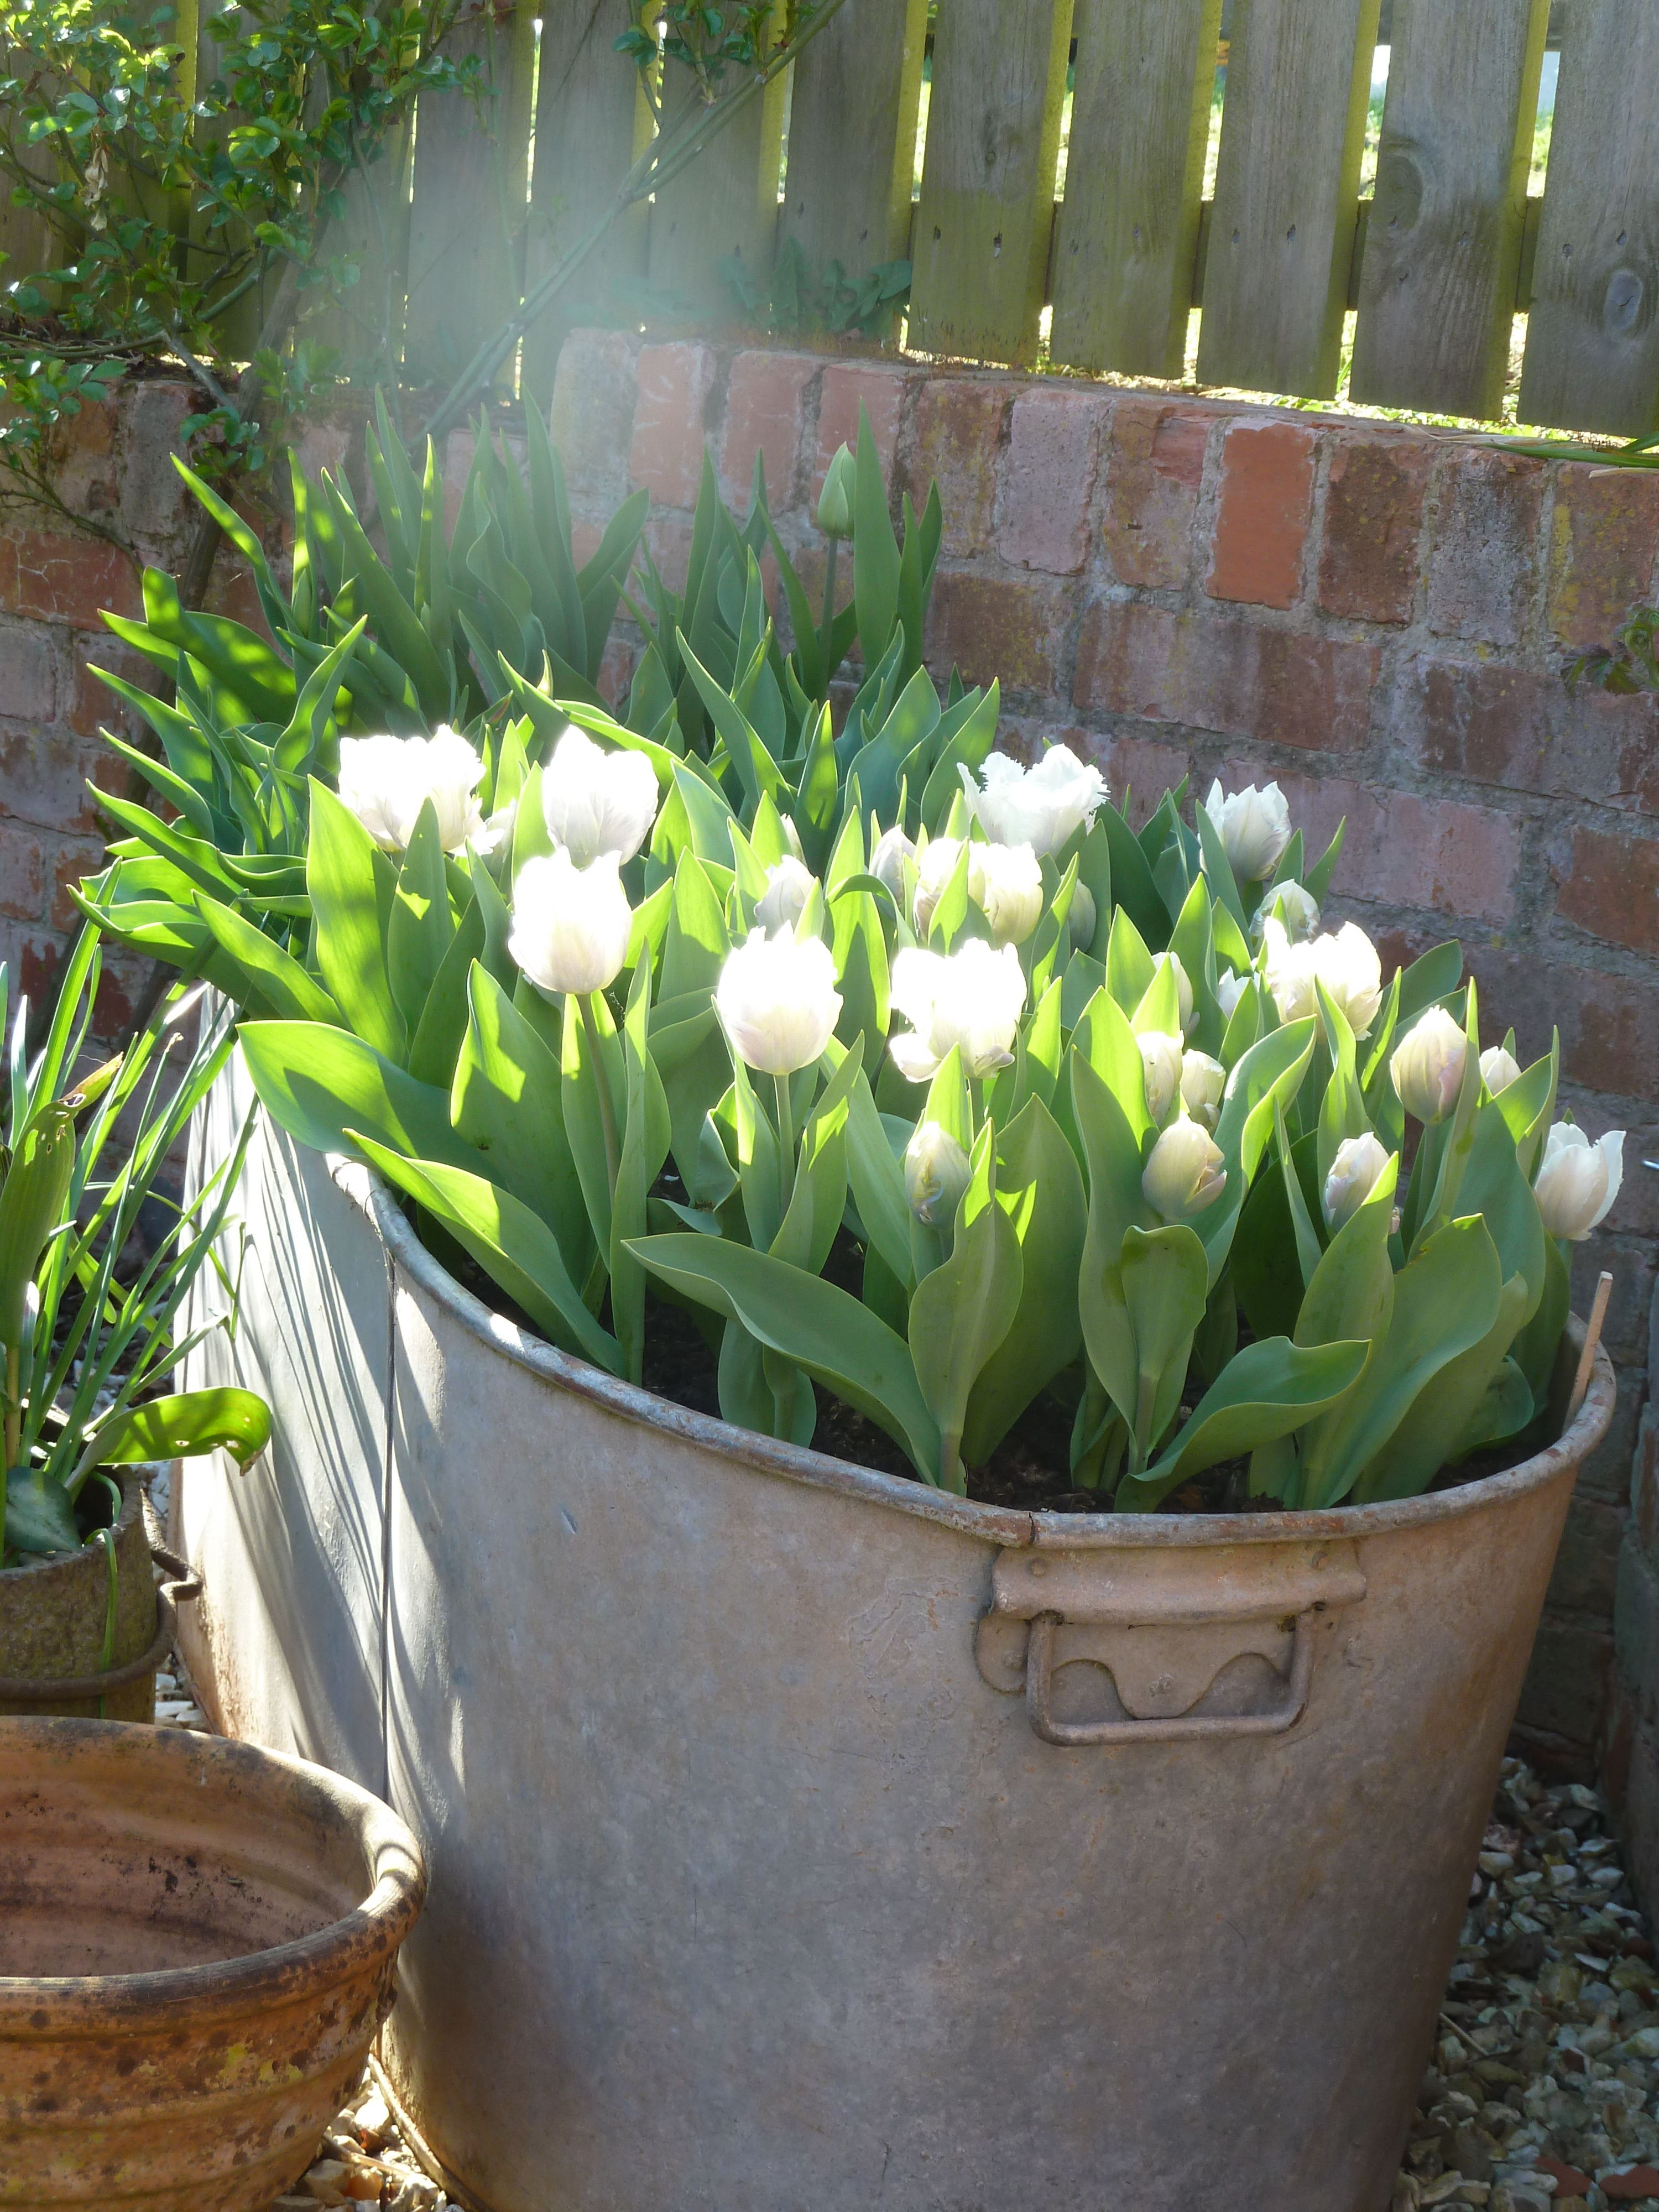 A very large old bath full of tulips